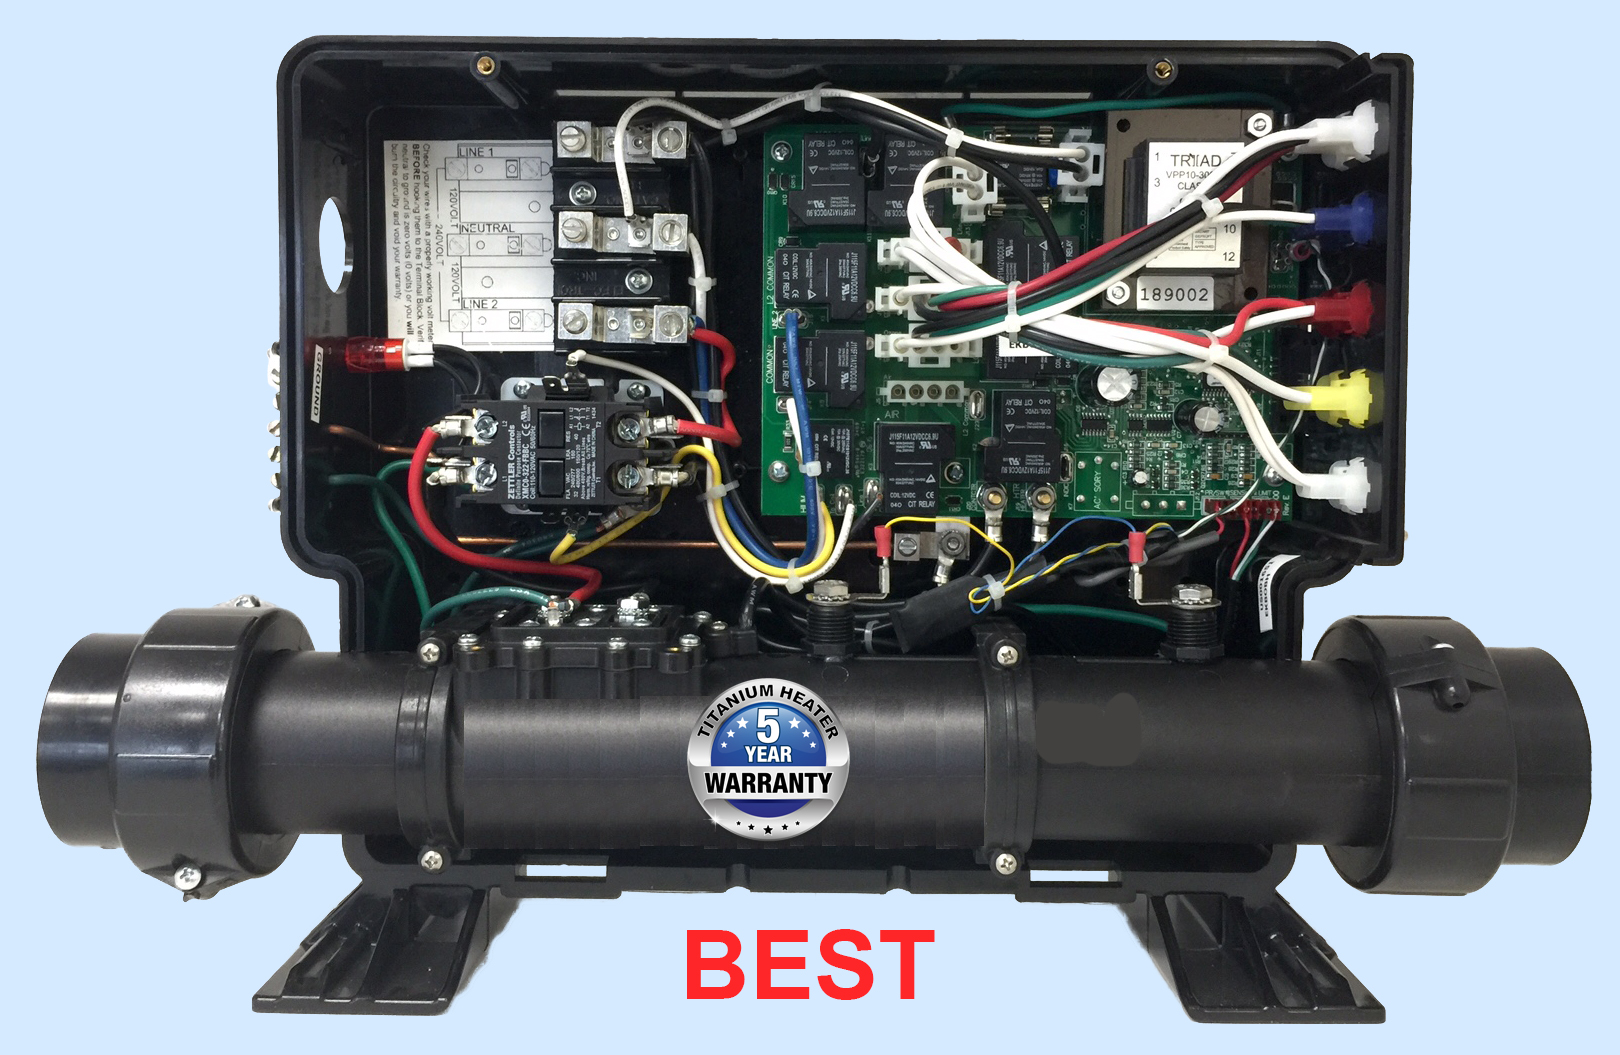 cosmoheat open warranty motor hot best spa hl balboa for tub direct usc control digital replacement controller minitrol a